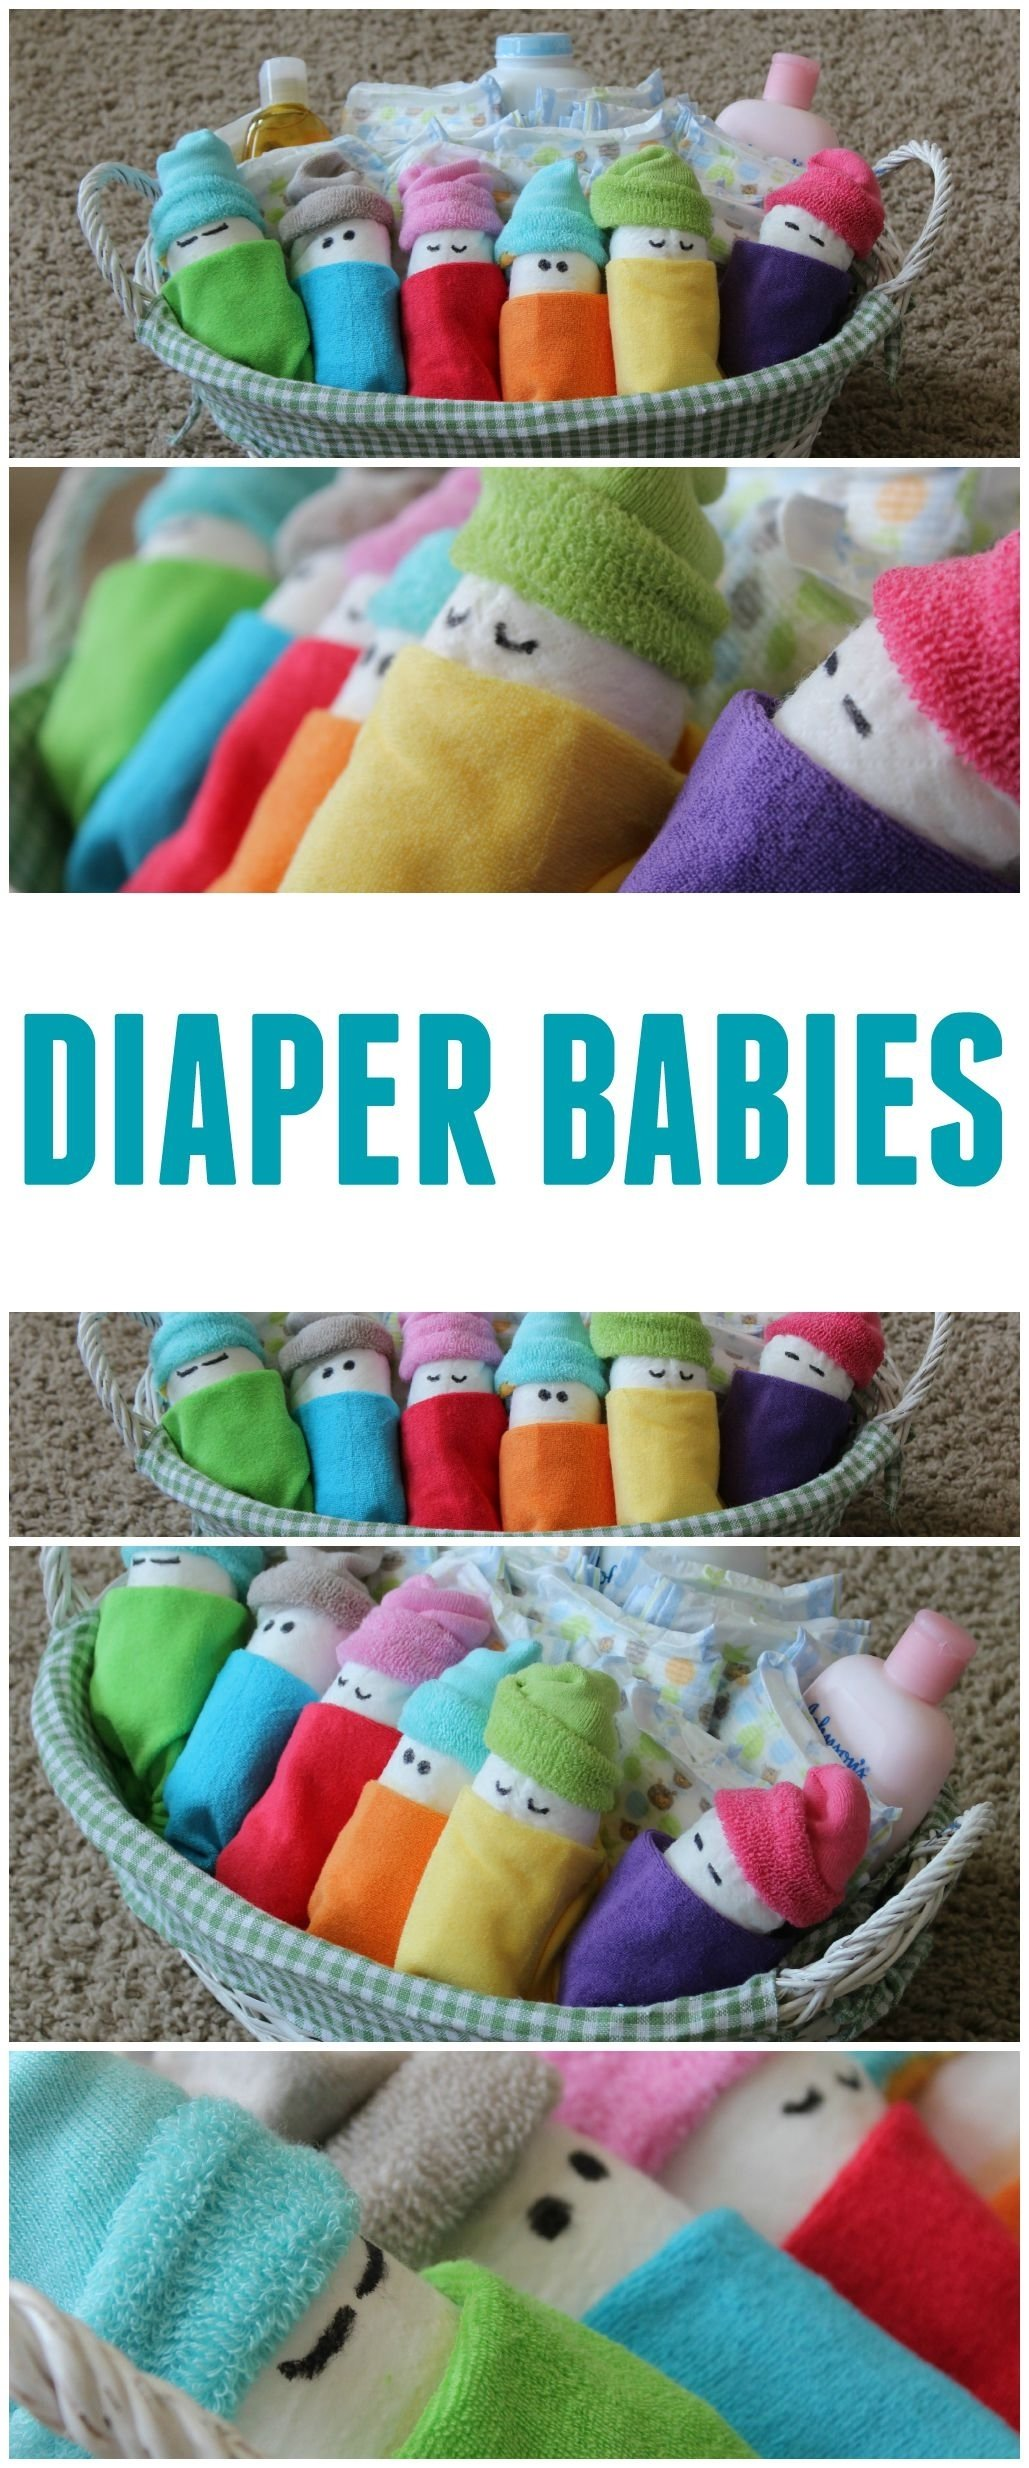 10 Pretty Diaper Ideas For Baby Shower Gift how to make diaper babies easy baby shower gift idea frugal fanatic 3 2020